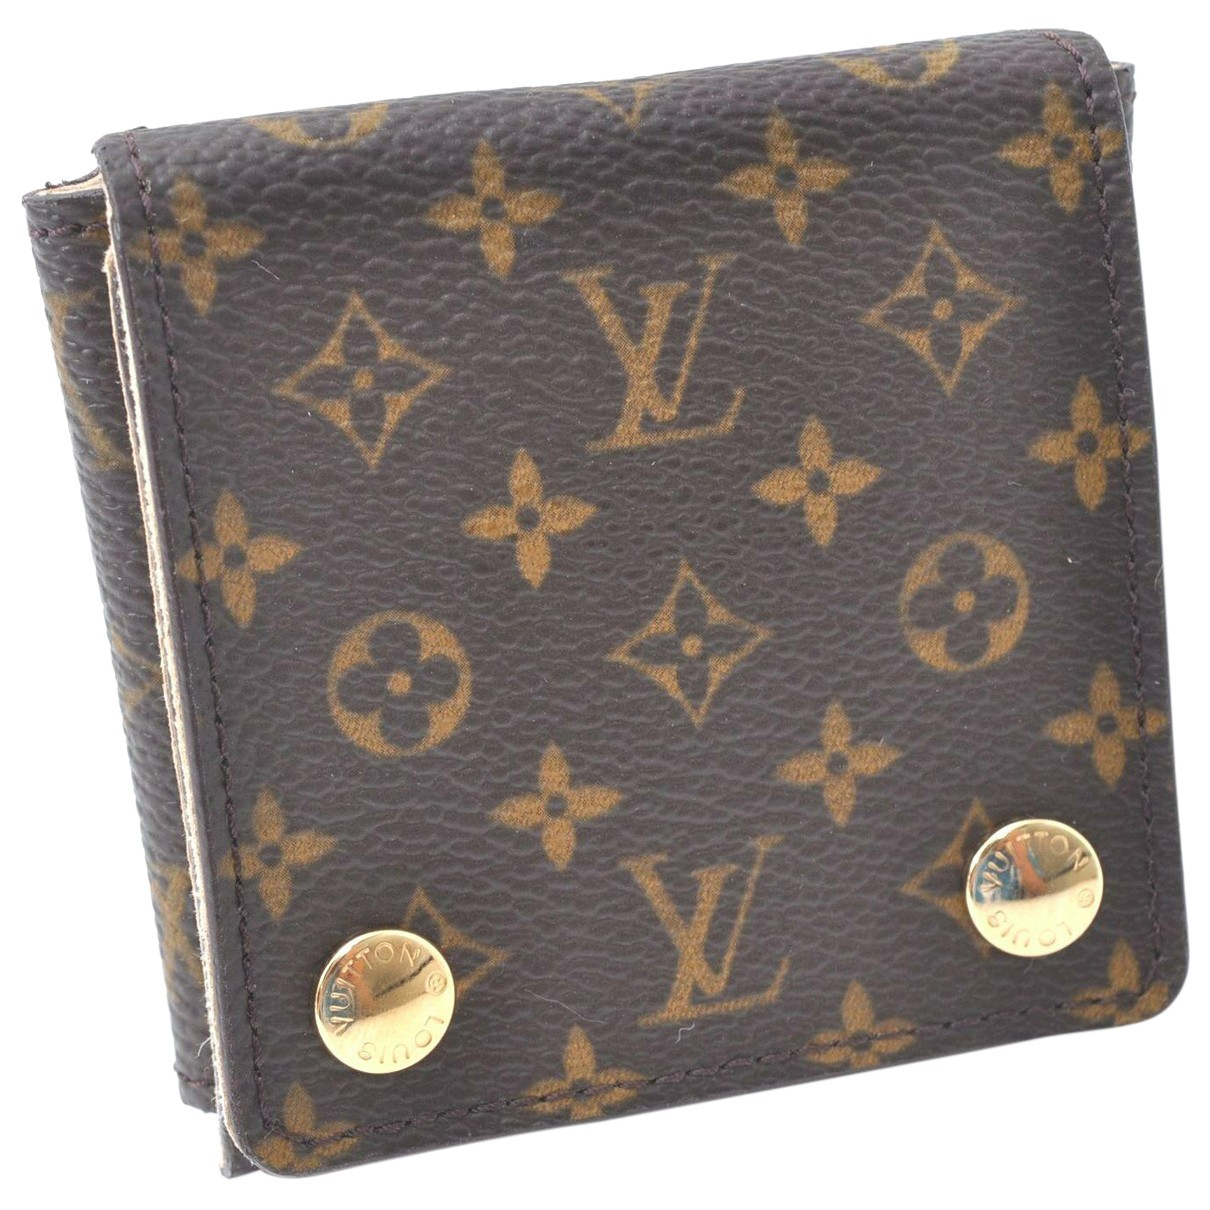 Louis Vuitton \N Anhaenger in  Braun Leinen